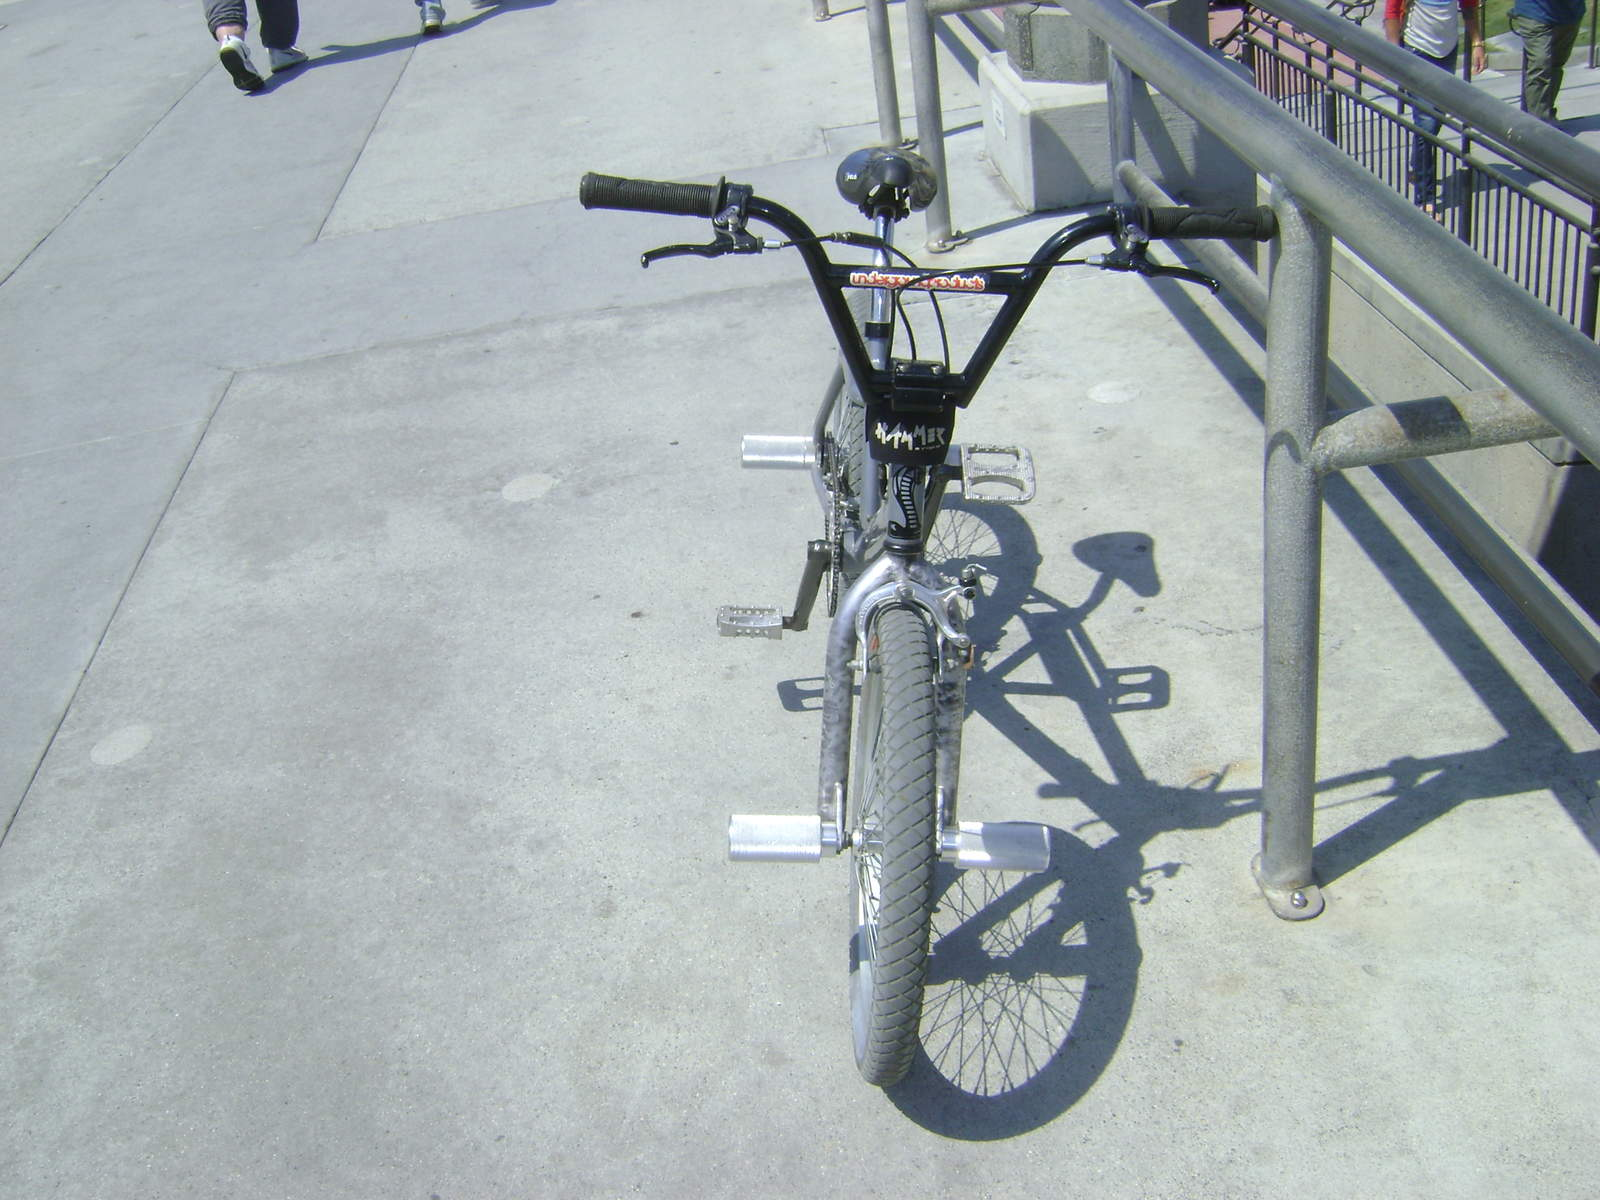 https://s3.amazonaws.com/uploads.bmxmuseum.com/user-images/6905/dsc002395a2183757e.jpg